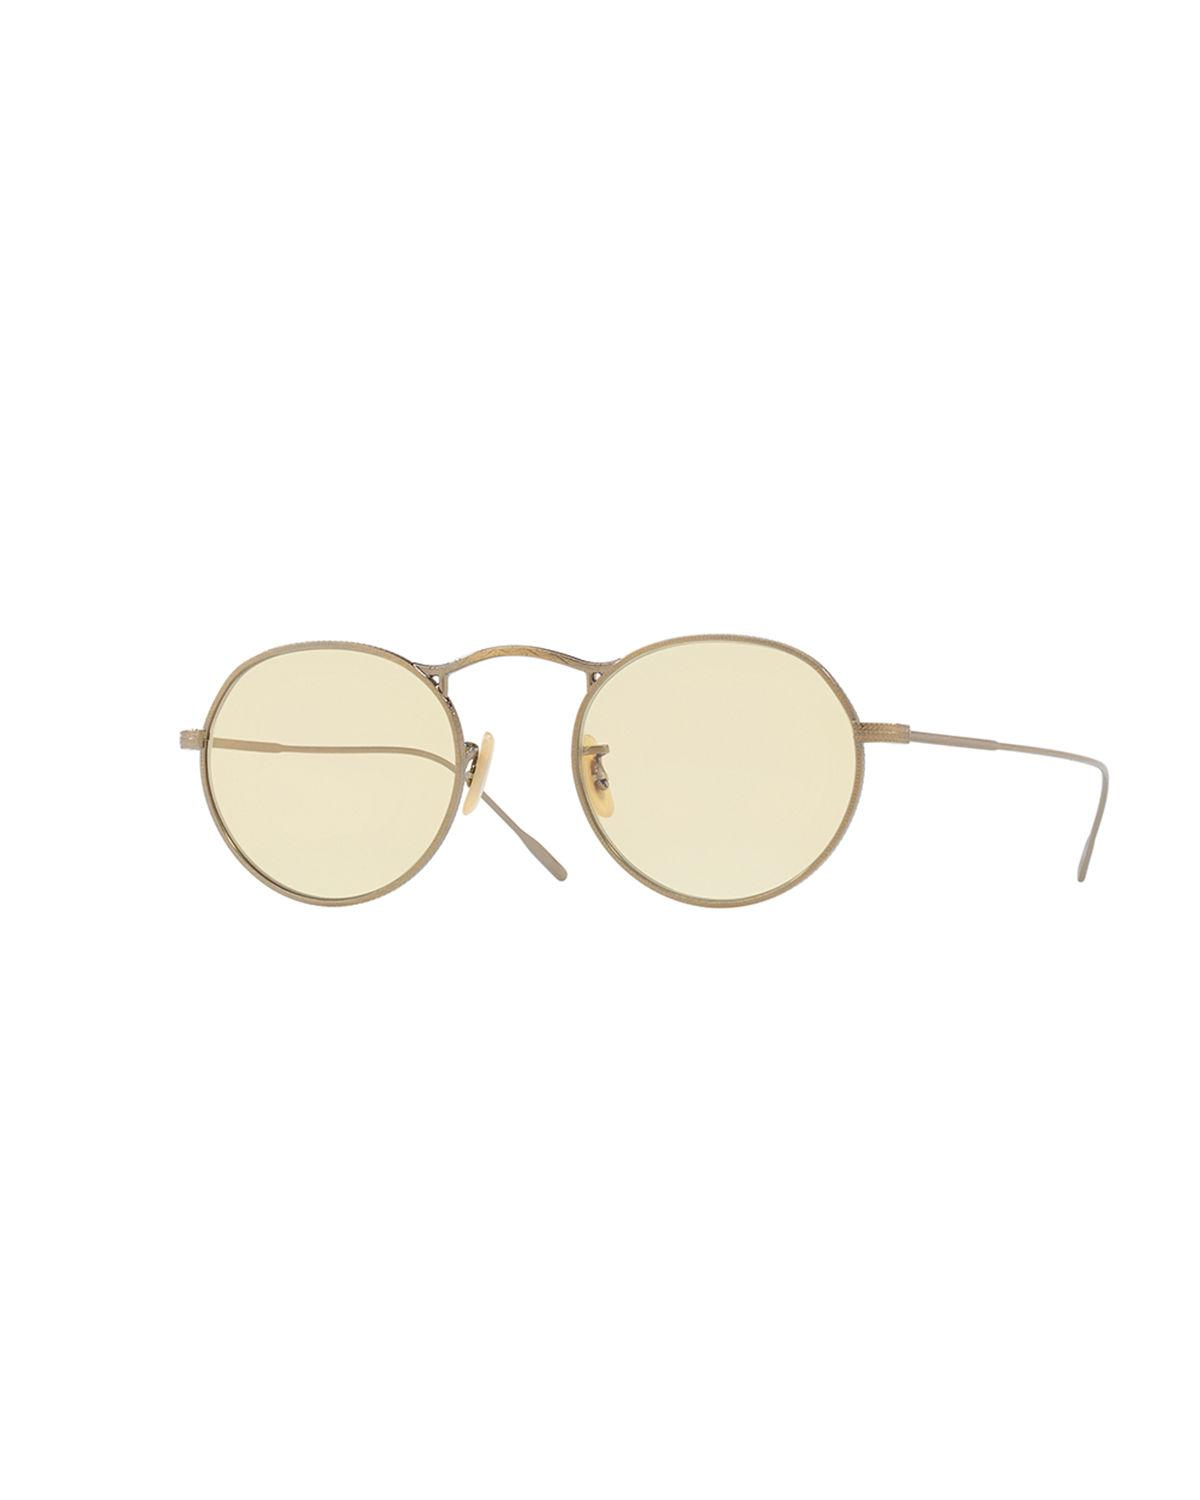 9d7c848a43d Oliver Peoples. Women s Metallic M-4 30th Mirrored Round Sunglasses.  455  From Neiman Marcus